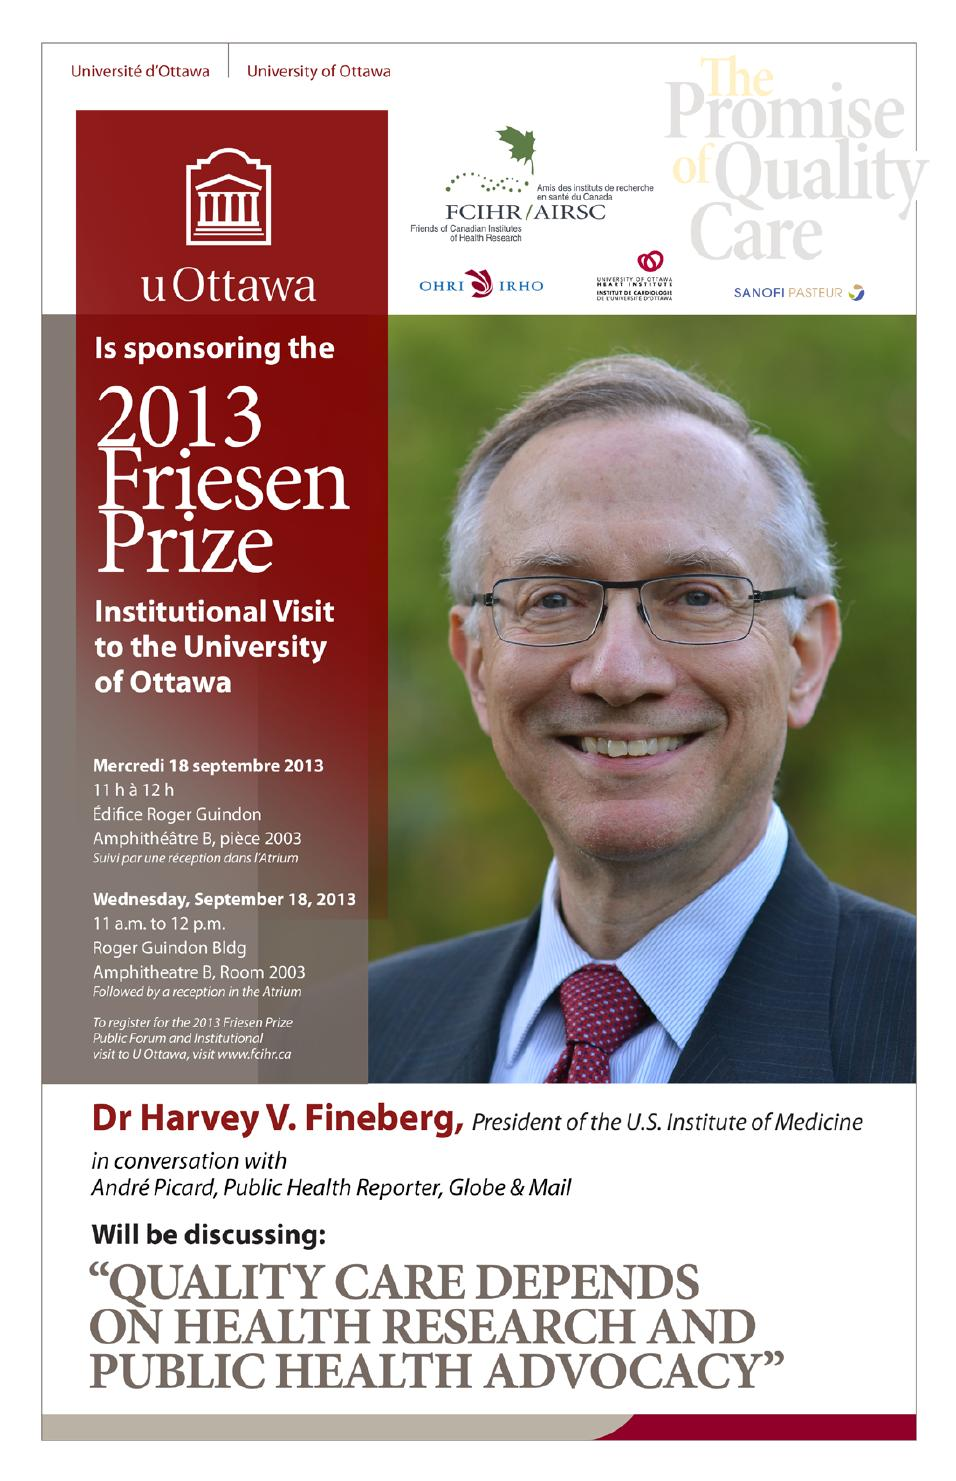 U Ottawa Institutional visit Harvey Fineberg in Conversation with André Picard - Sept 18 - 2013 Friesen Prize - Ottawa